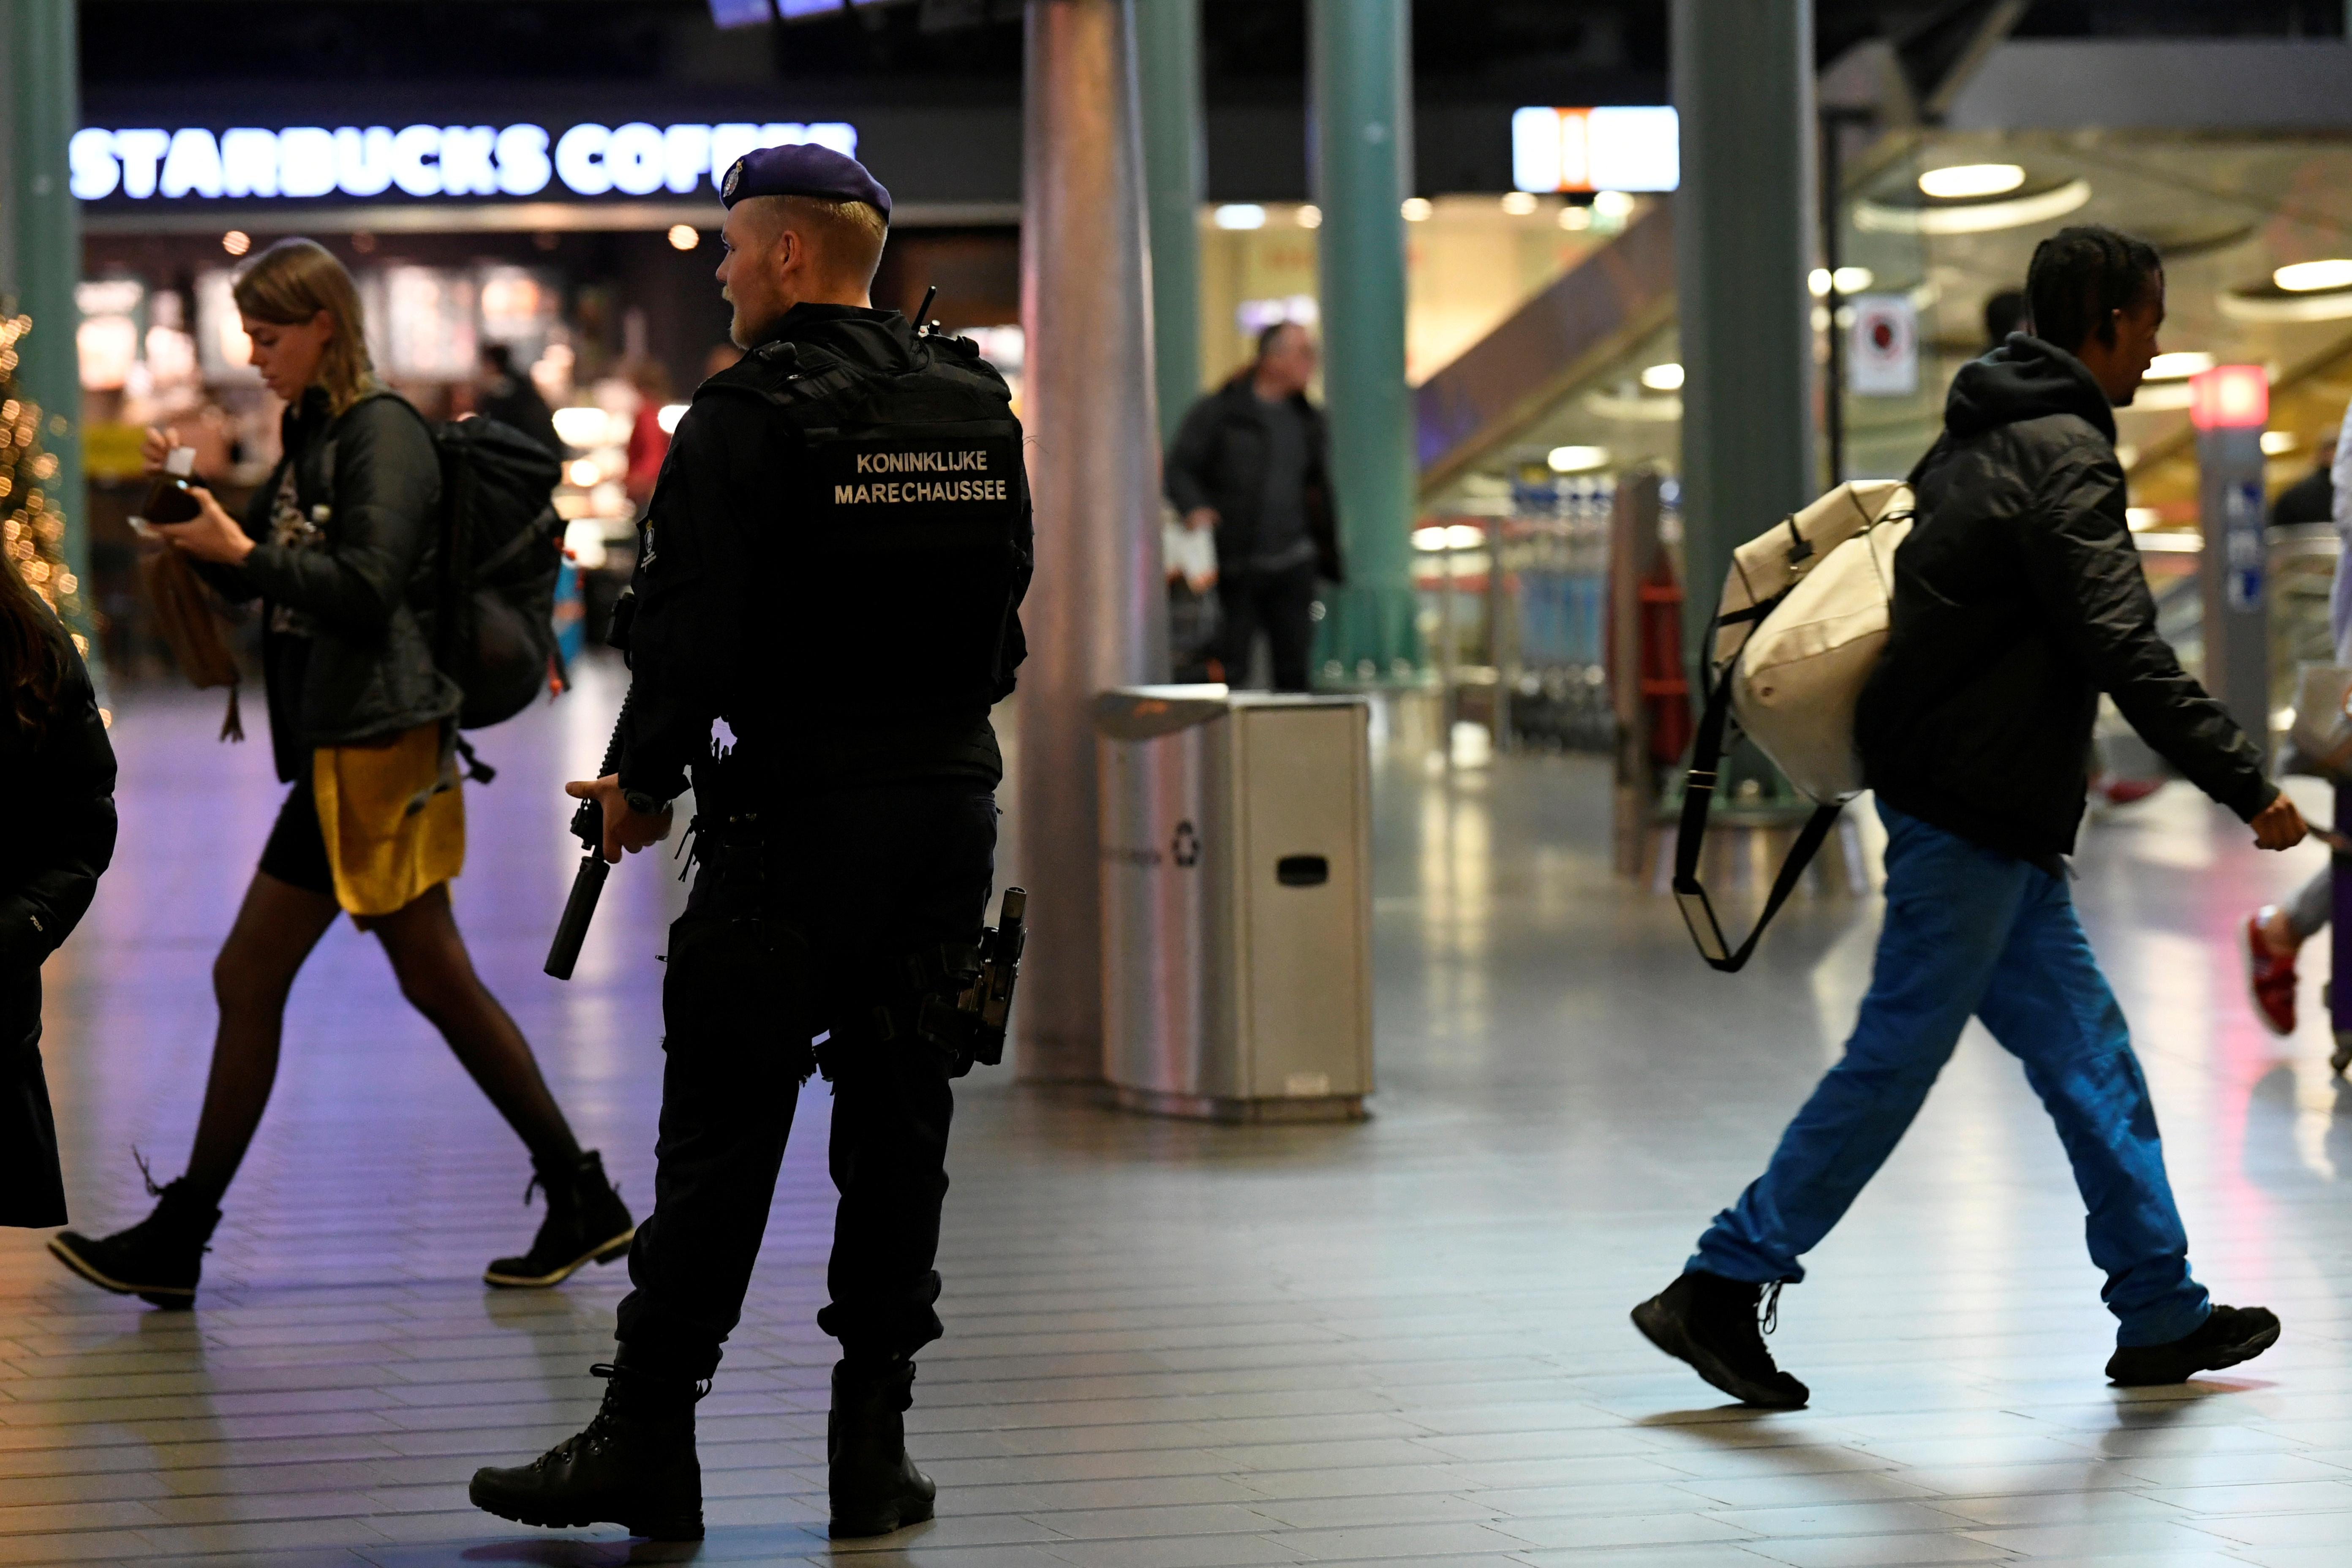 Netherlands reduces terror threat level after six years